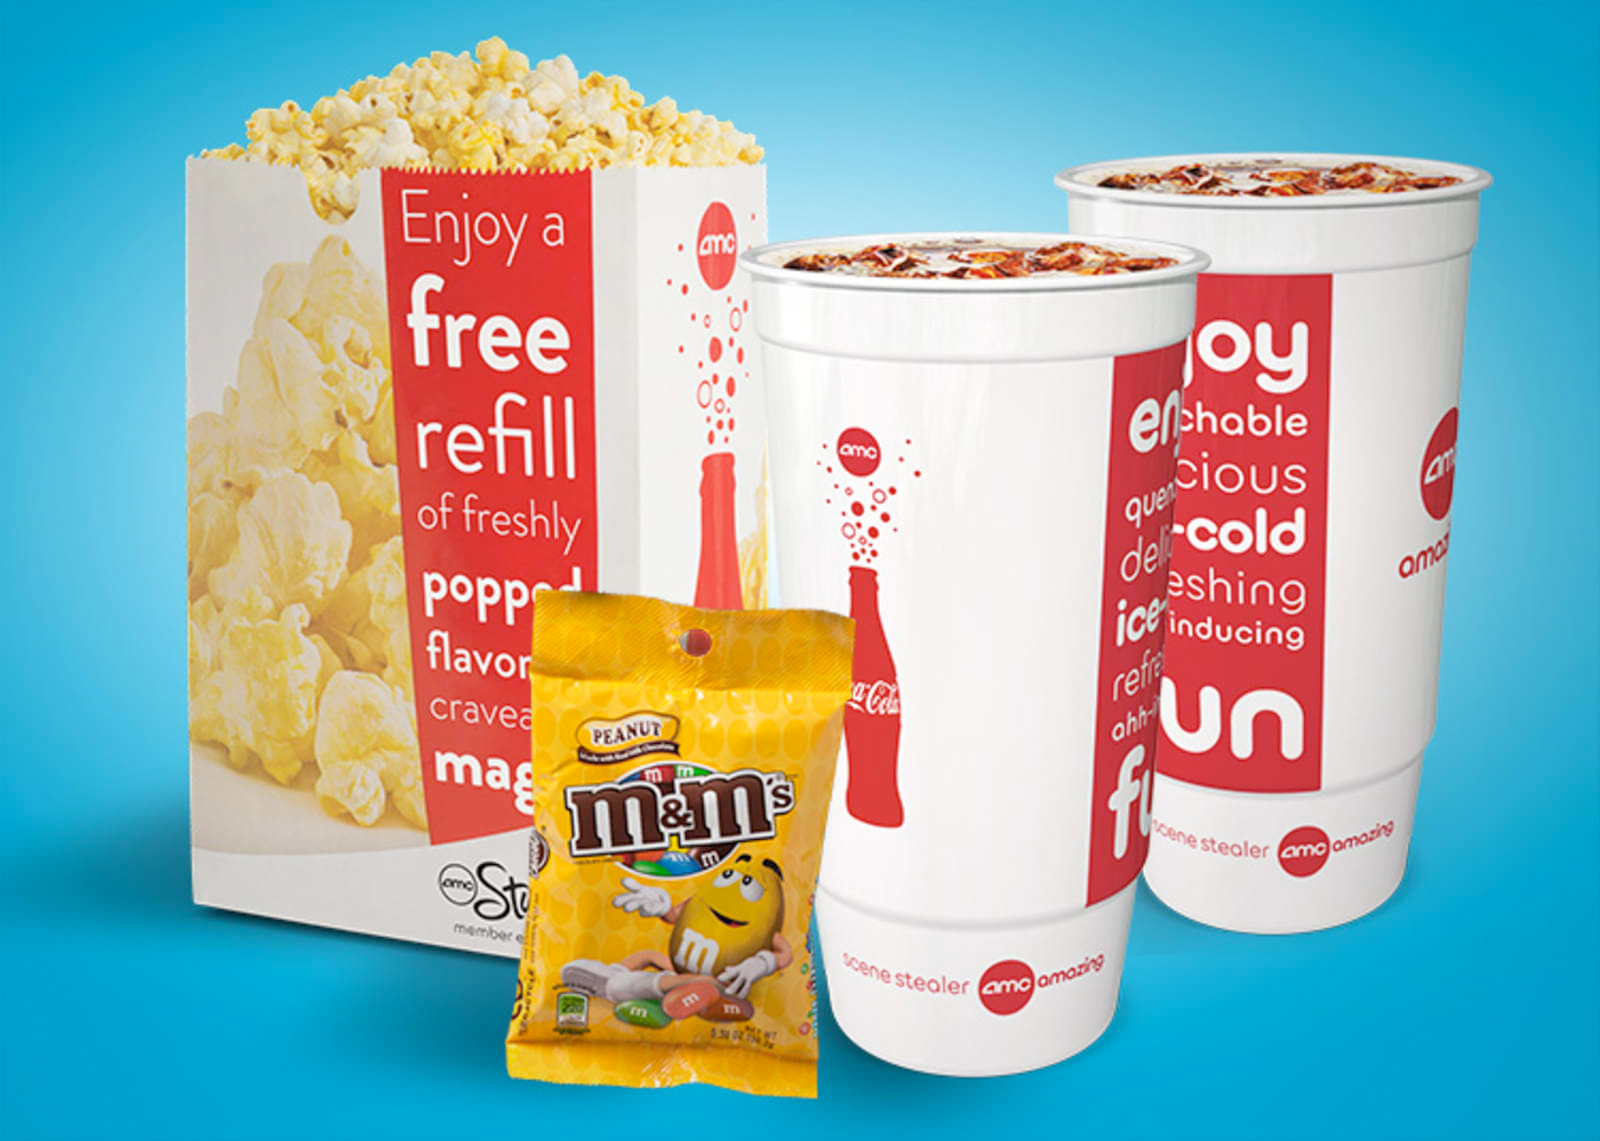 Join AMC Stubs now for movie rewards and discounts like FREE size upgrades on popcorn. View our movie memberships and loyalty programs, and get started for FREE.